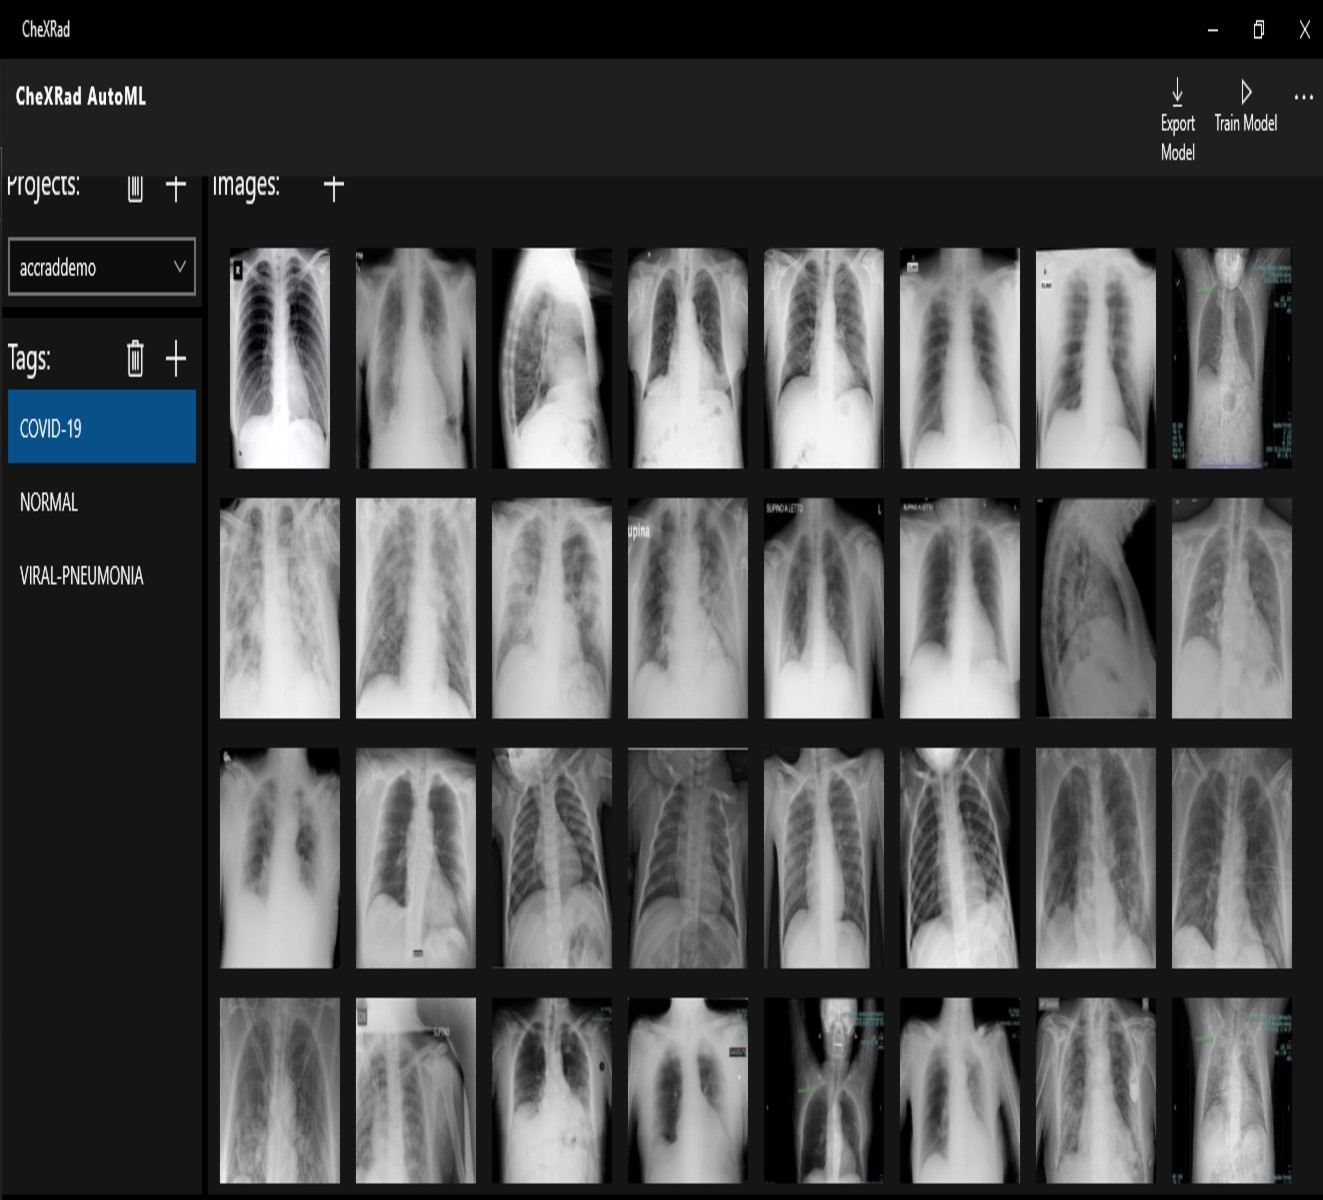 X-ray used for predictive analytics helps surgeons improve patient care